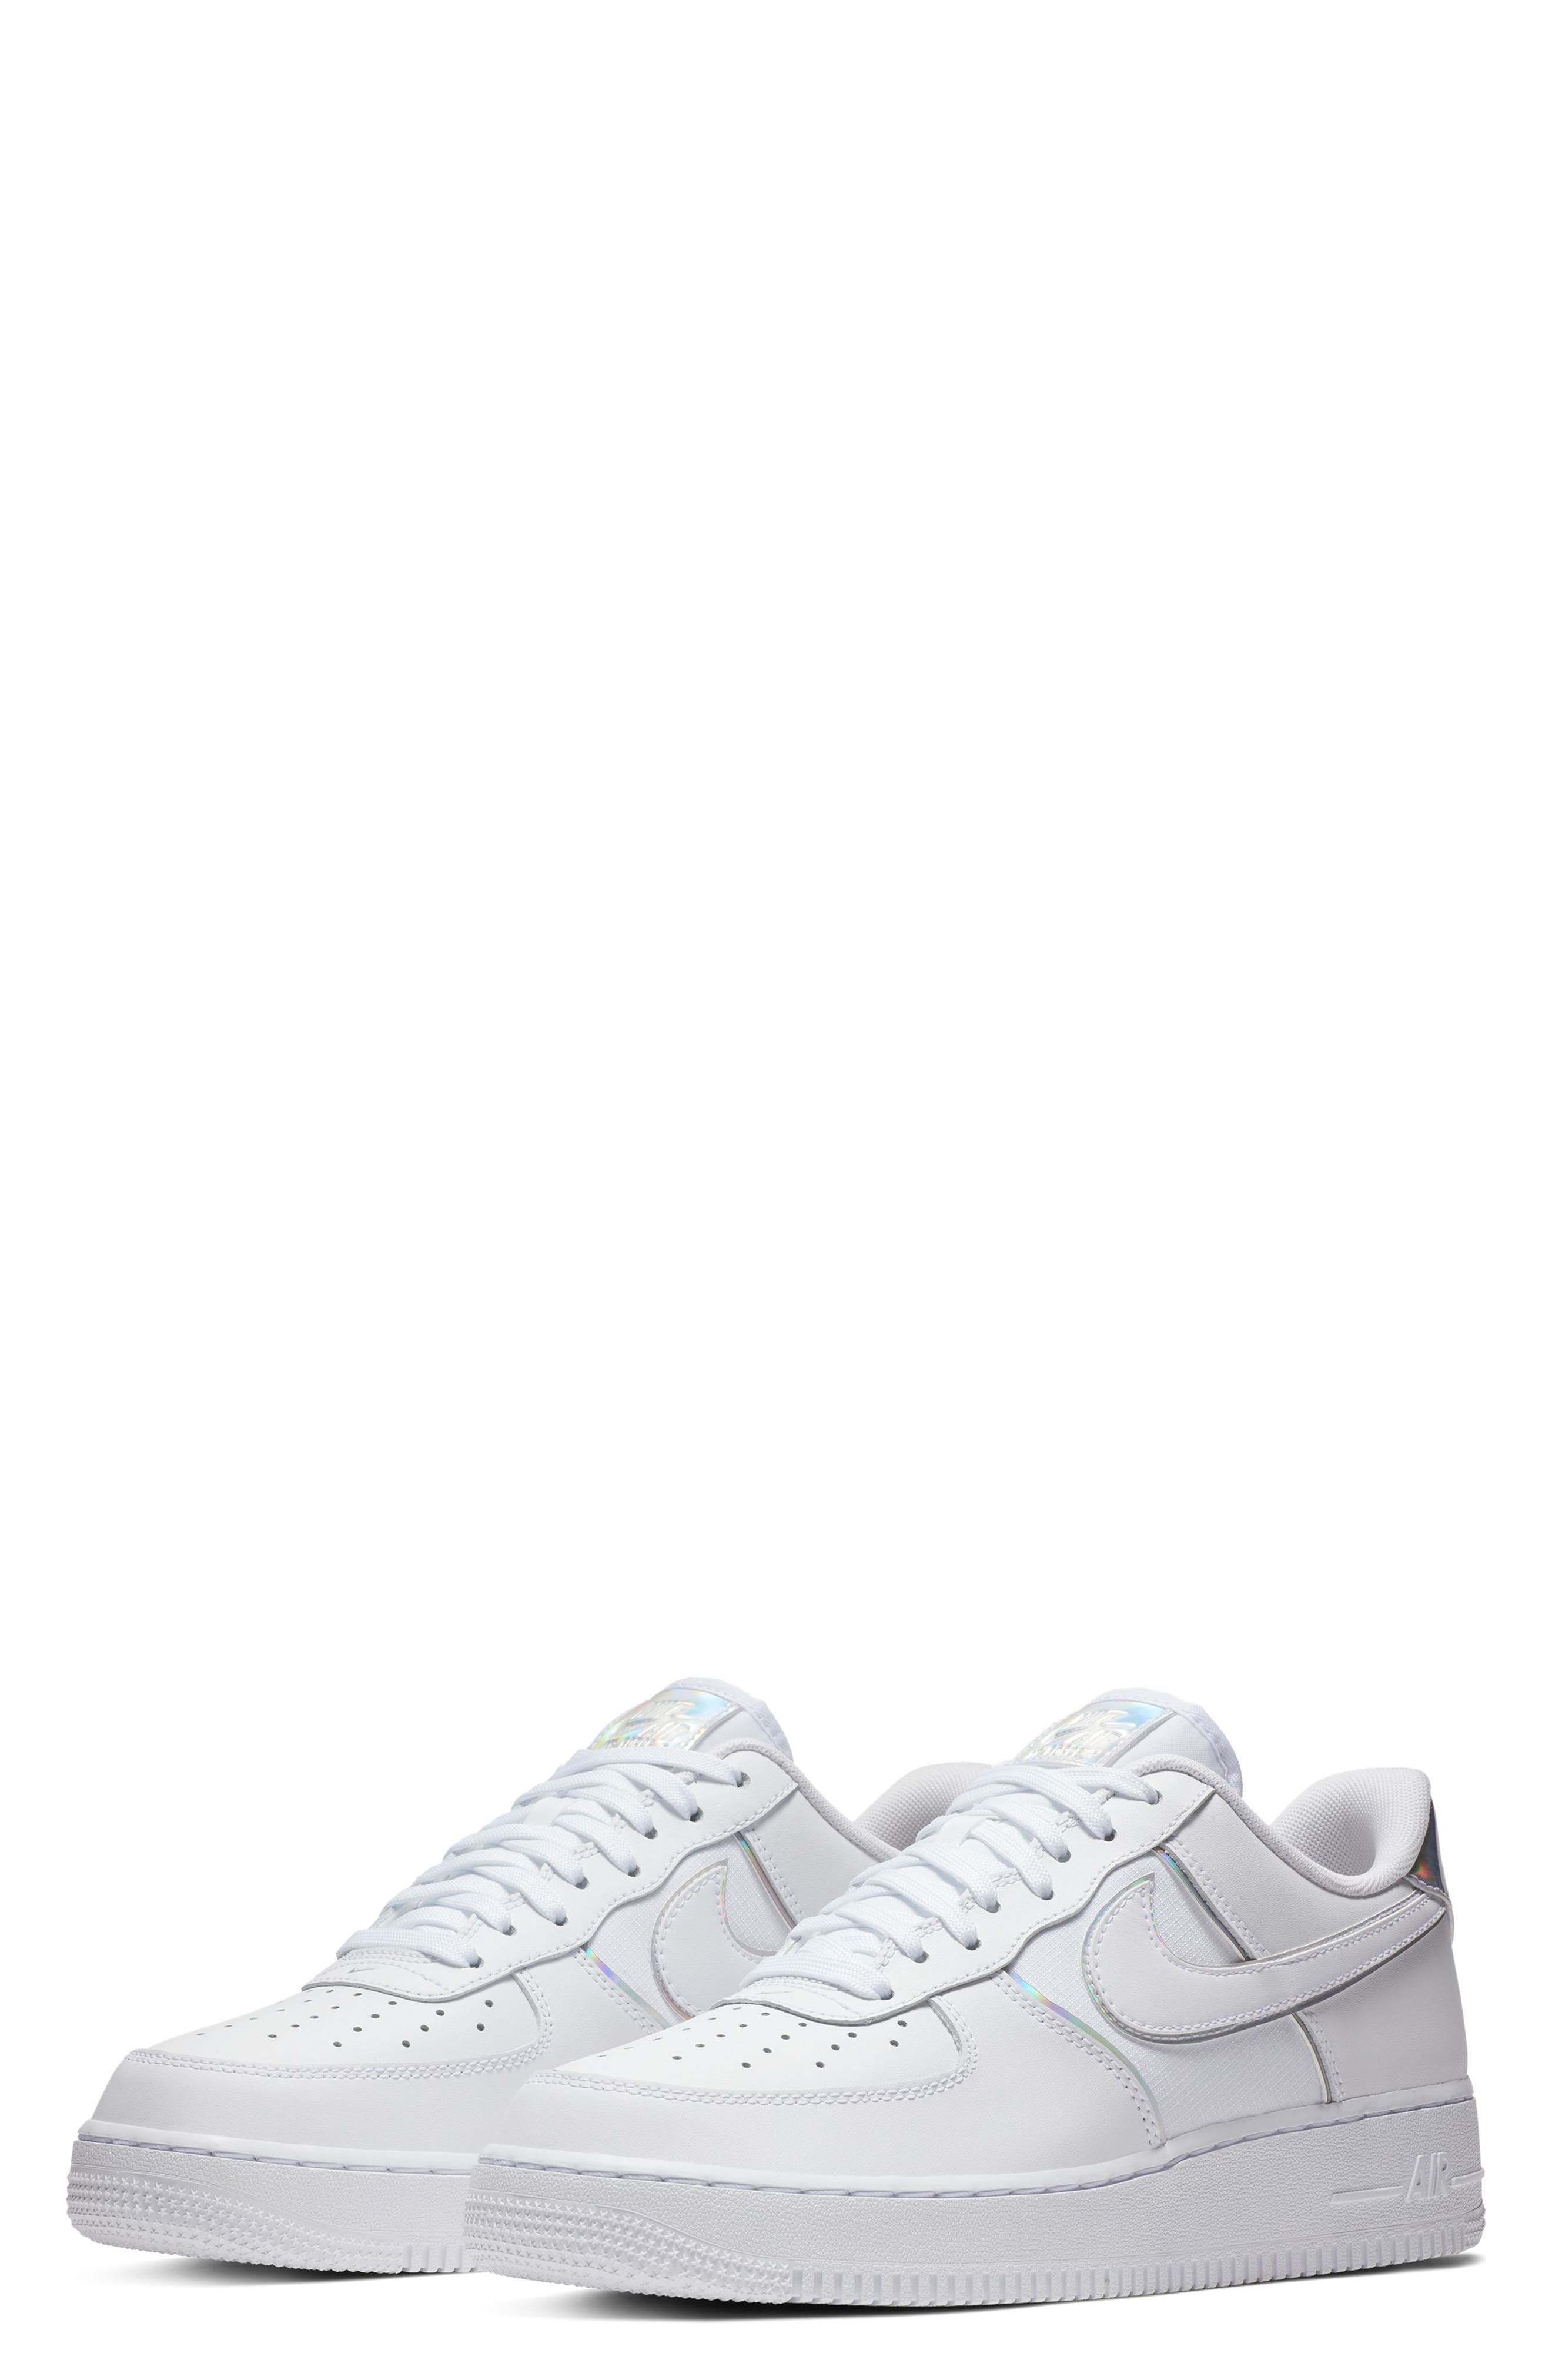 Air Force 1 '07 LV8 4 Sneaker, Main, color, WHITE/ WHITE/ WHITE